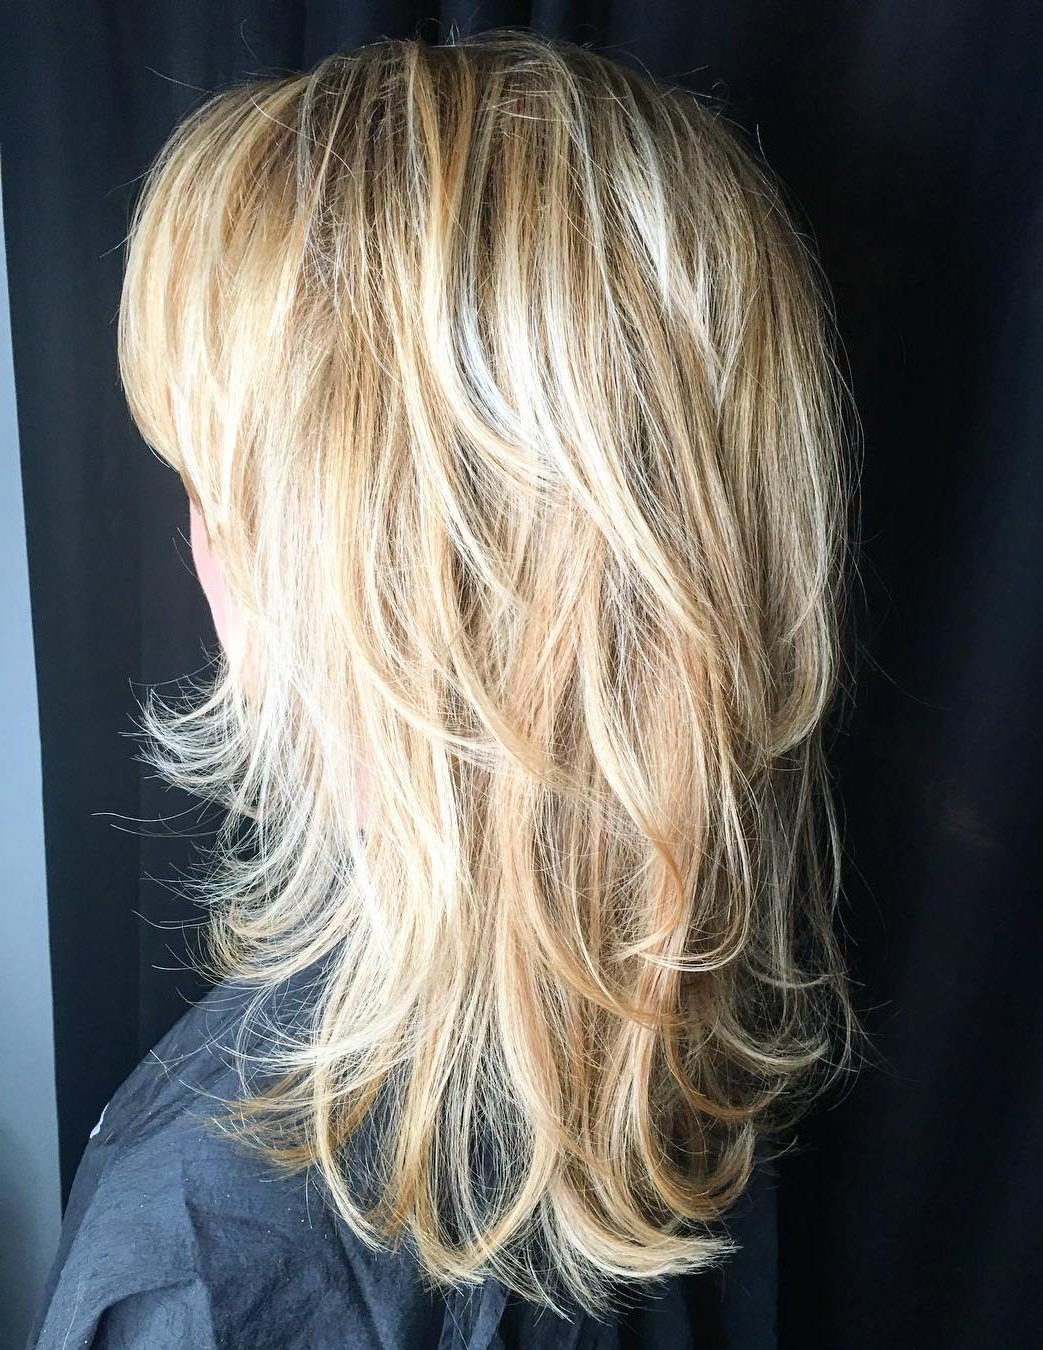 60 Lovely Long Shag Haircuts For Effortless Stylish Looks With Regard To Favorite Long Layered Hairstyles With Added Sheen (Gallery 2 of 20)